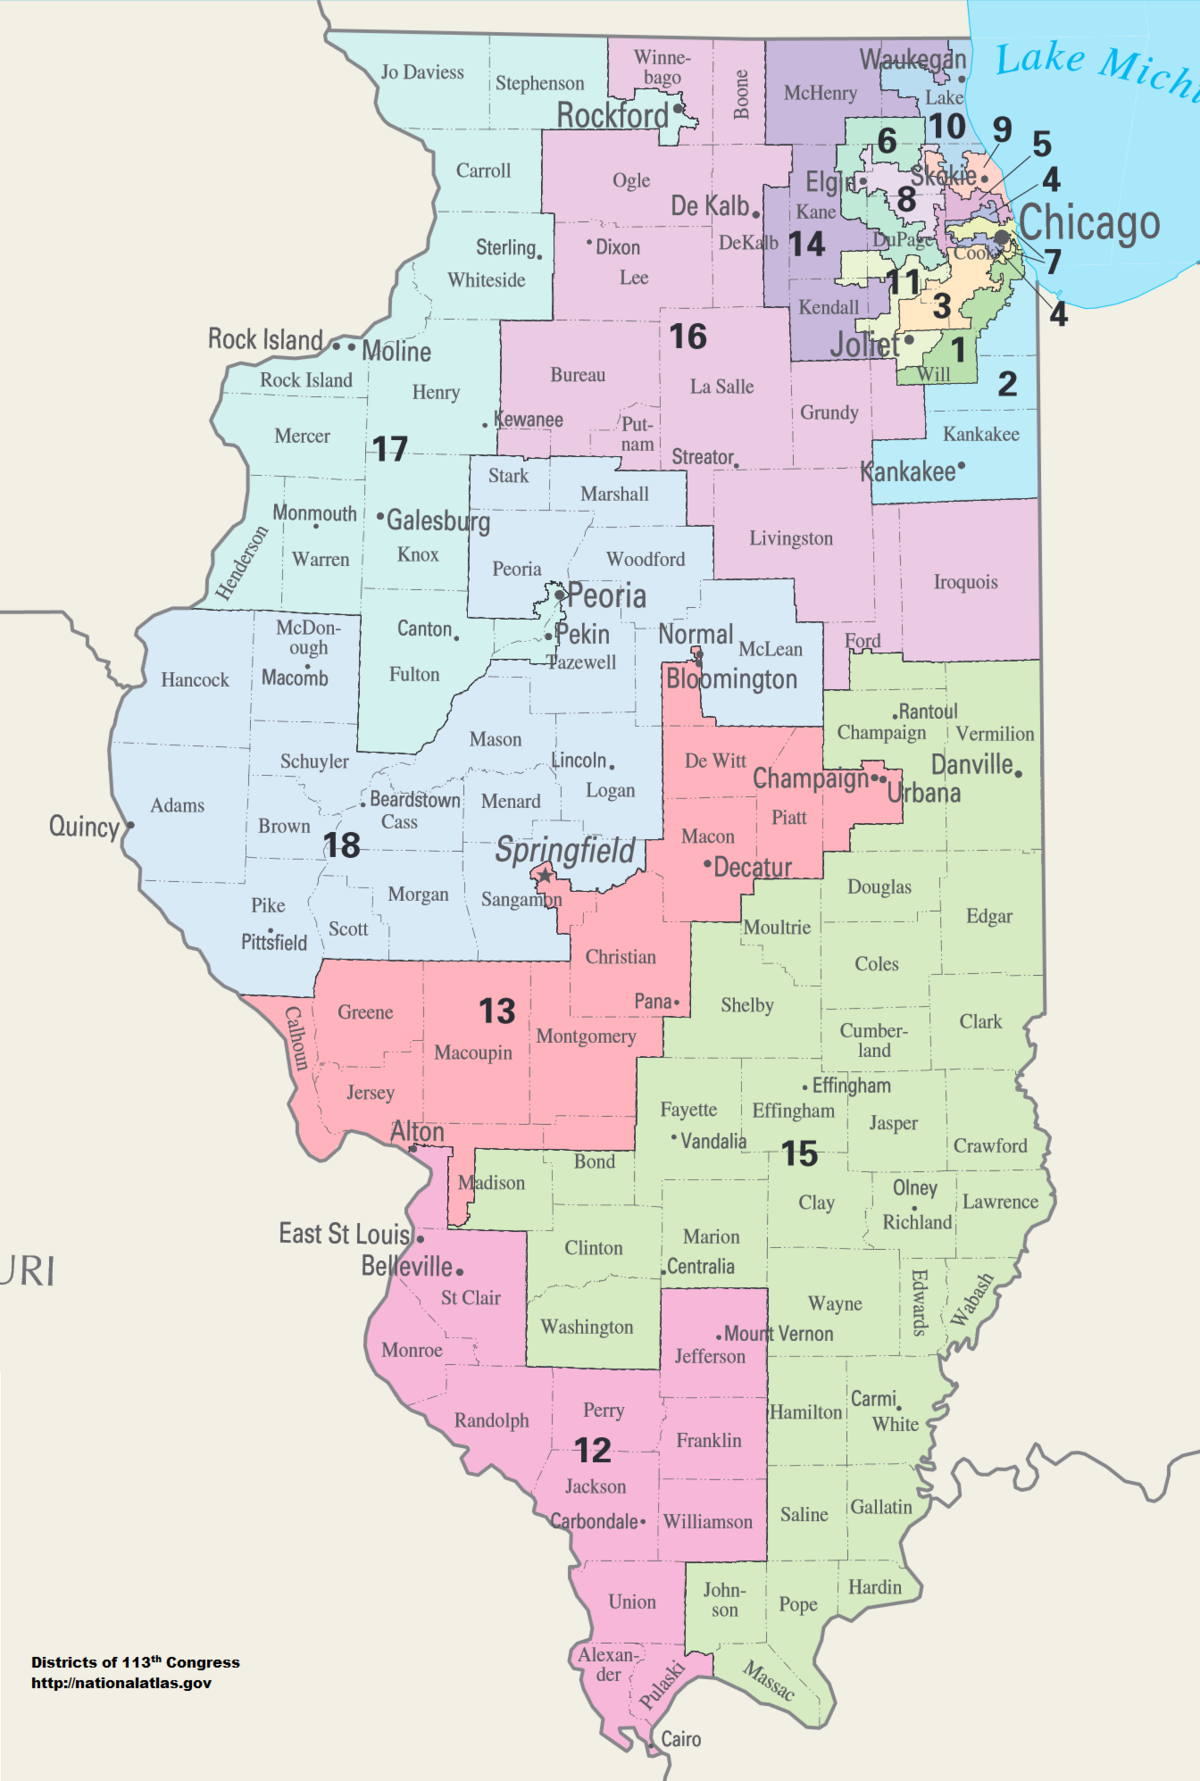 illinois' congressional districts - wikipedia